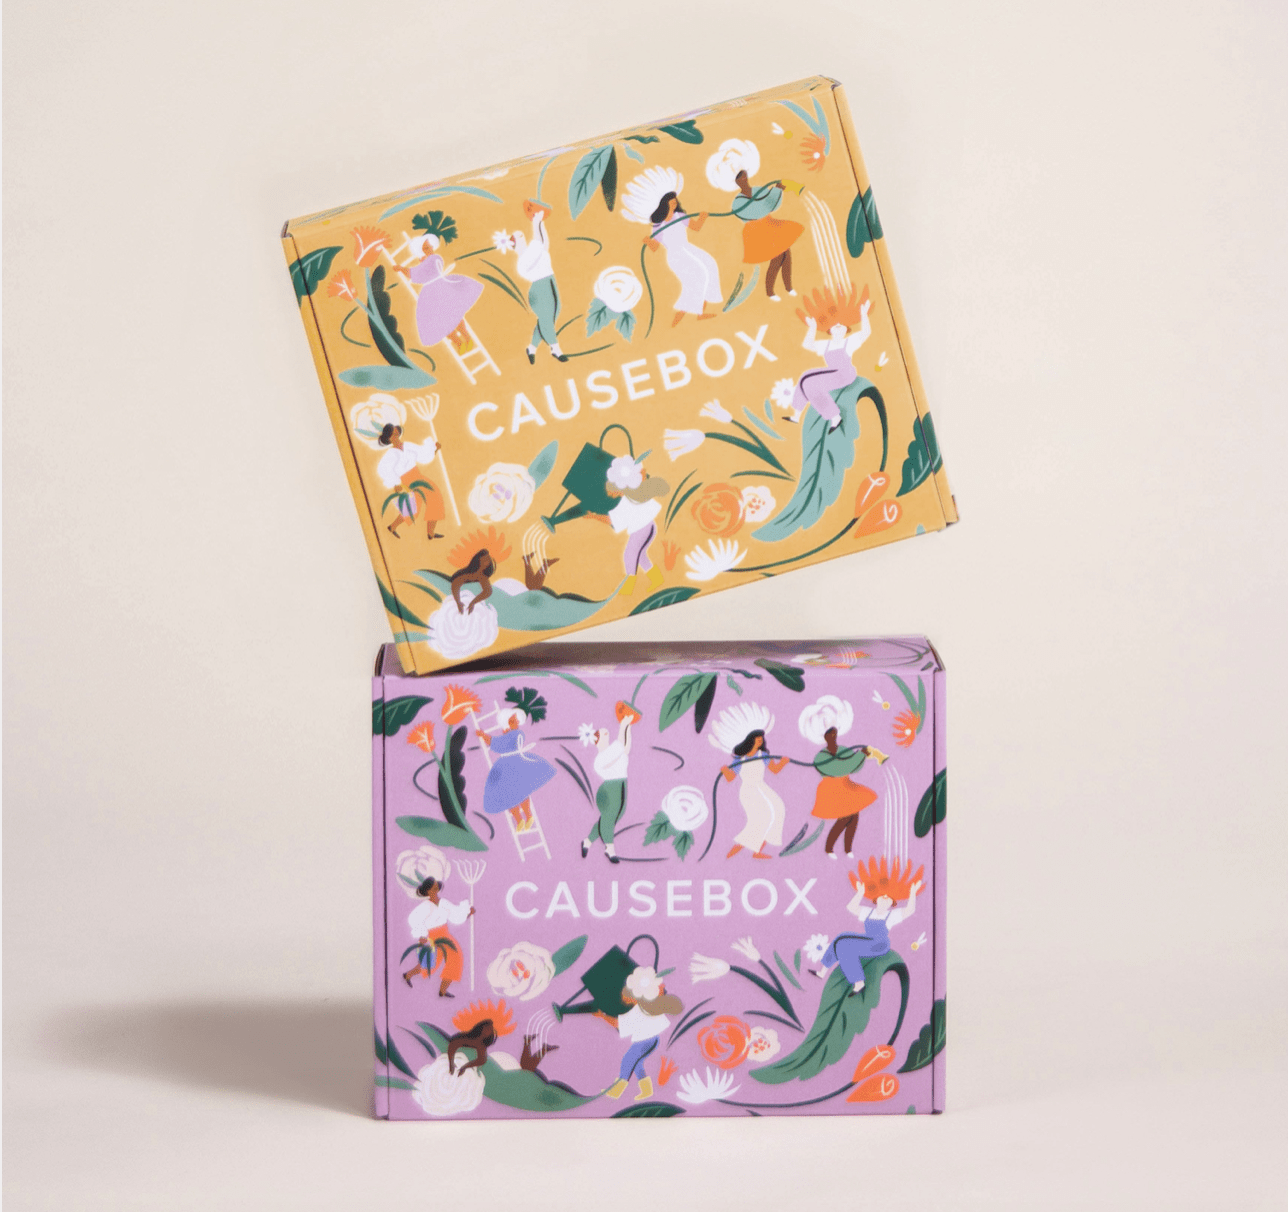 CAUSEBOX Spring 2021 Box – On Sale Now + Spoiler #5